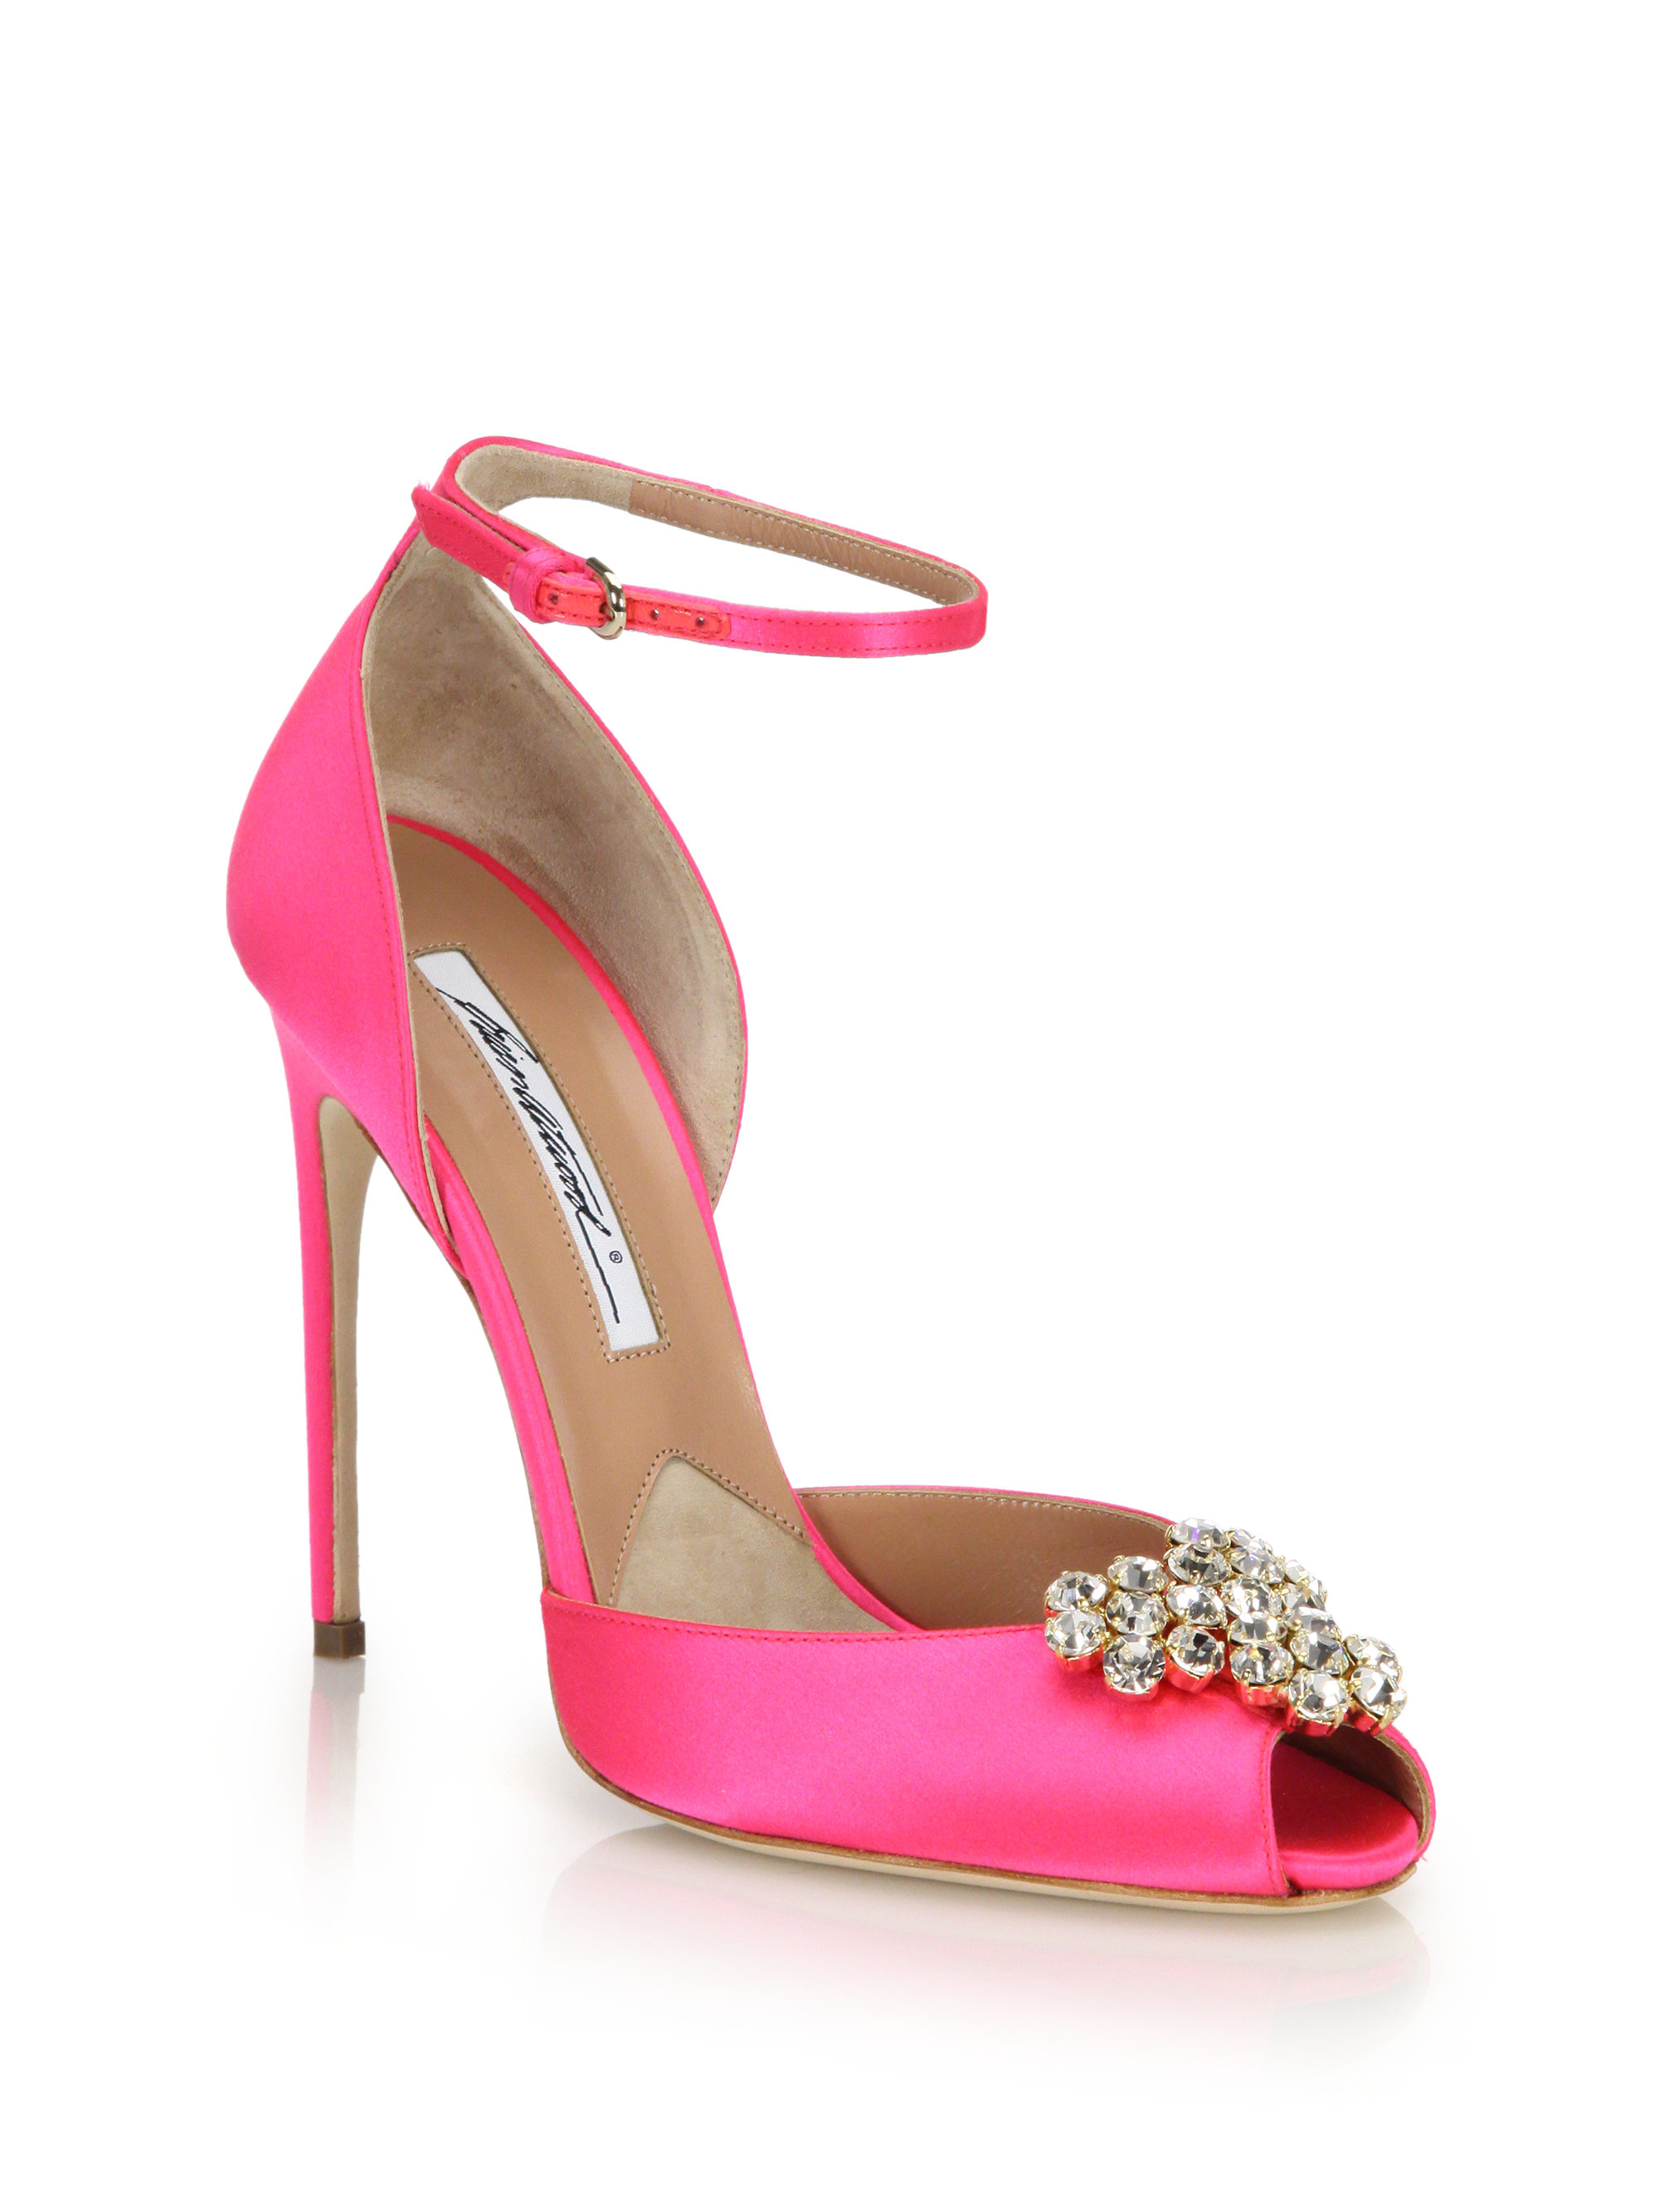 Lyst - Brian Atwood Embellished Satin Peep-toe Sandals in Pink 6c7e07504